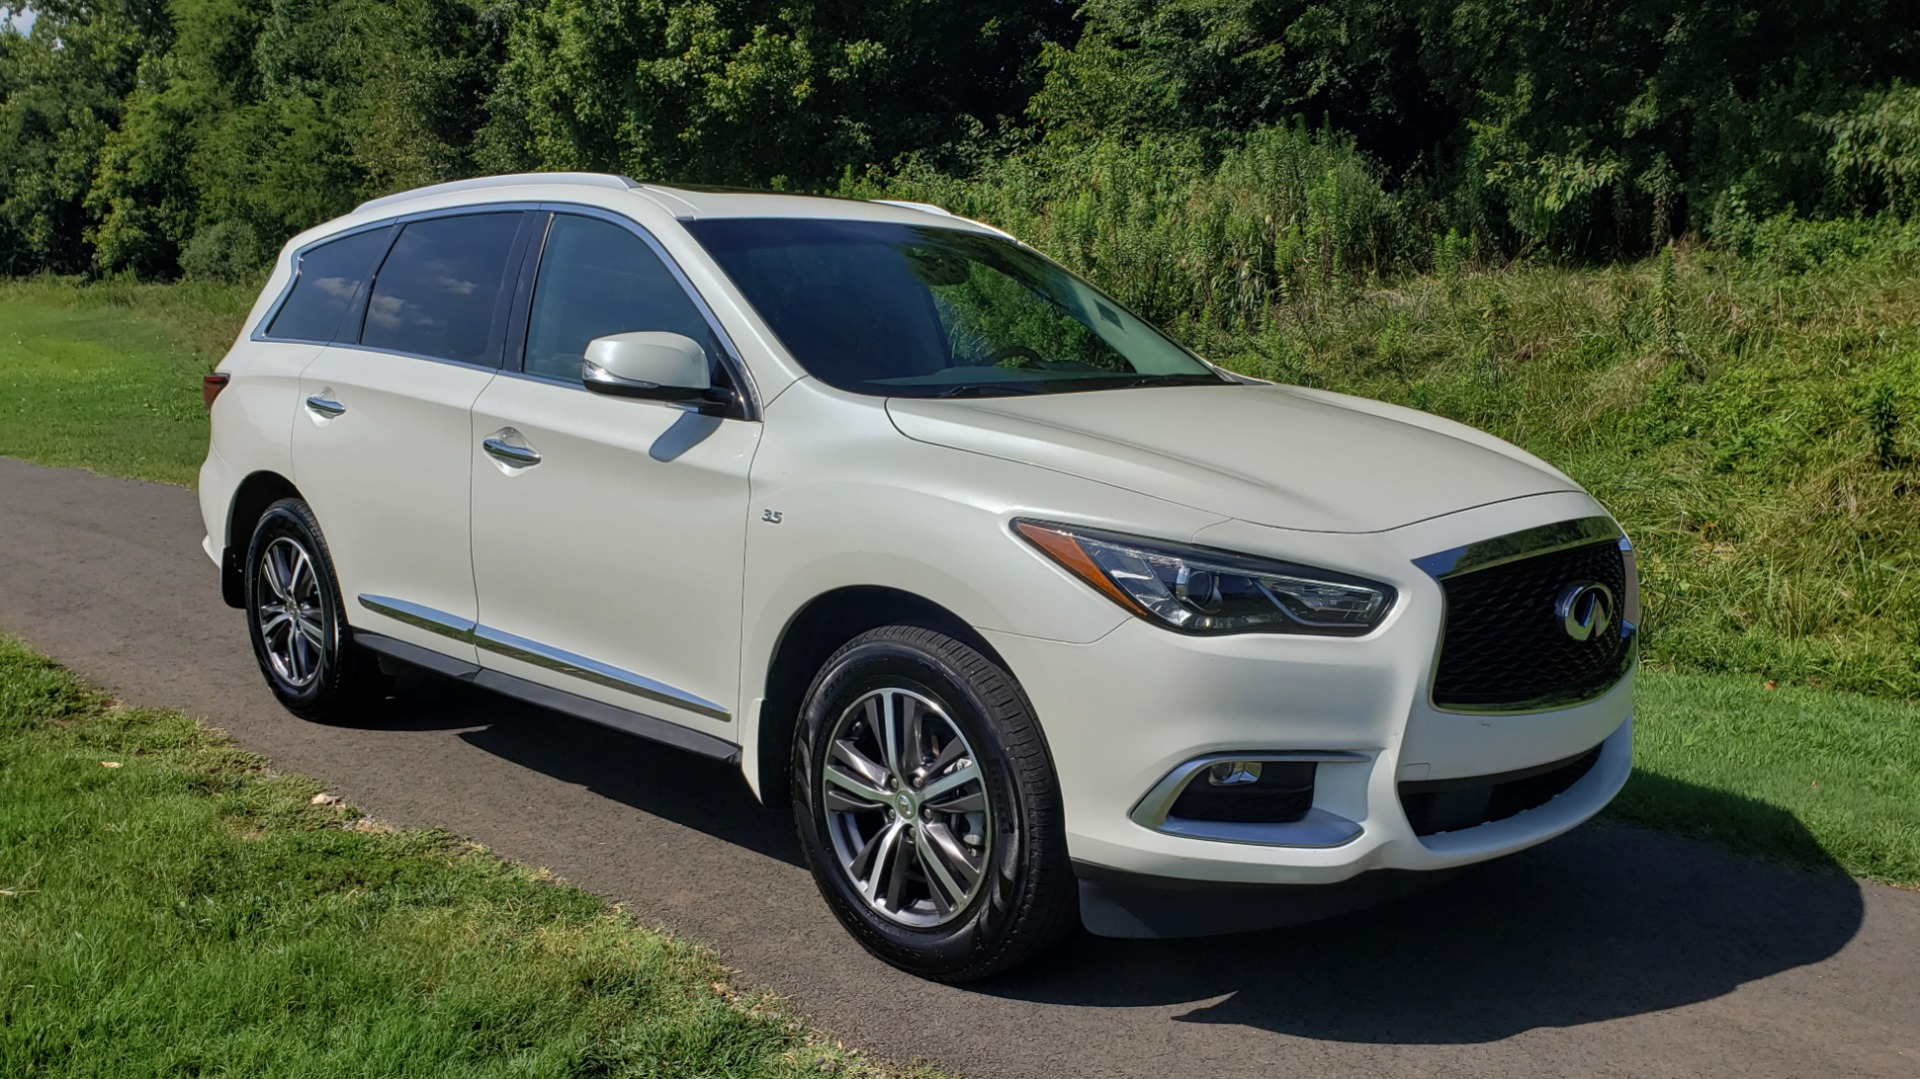 Used 2016 Infiniti QX60 AWD / 3.5L V6 / SUNROOF / HTD STS / 3-ROW / TOWING / REARVIEW for sale Sold at Formula Imports in Charlotte NC 28227 6